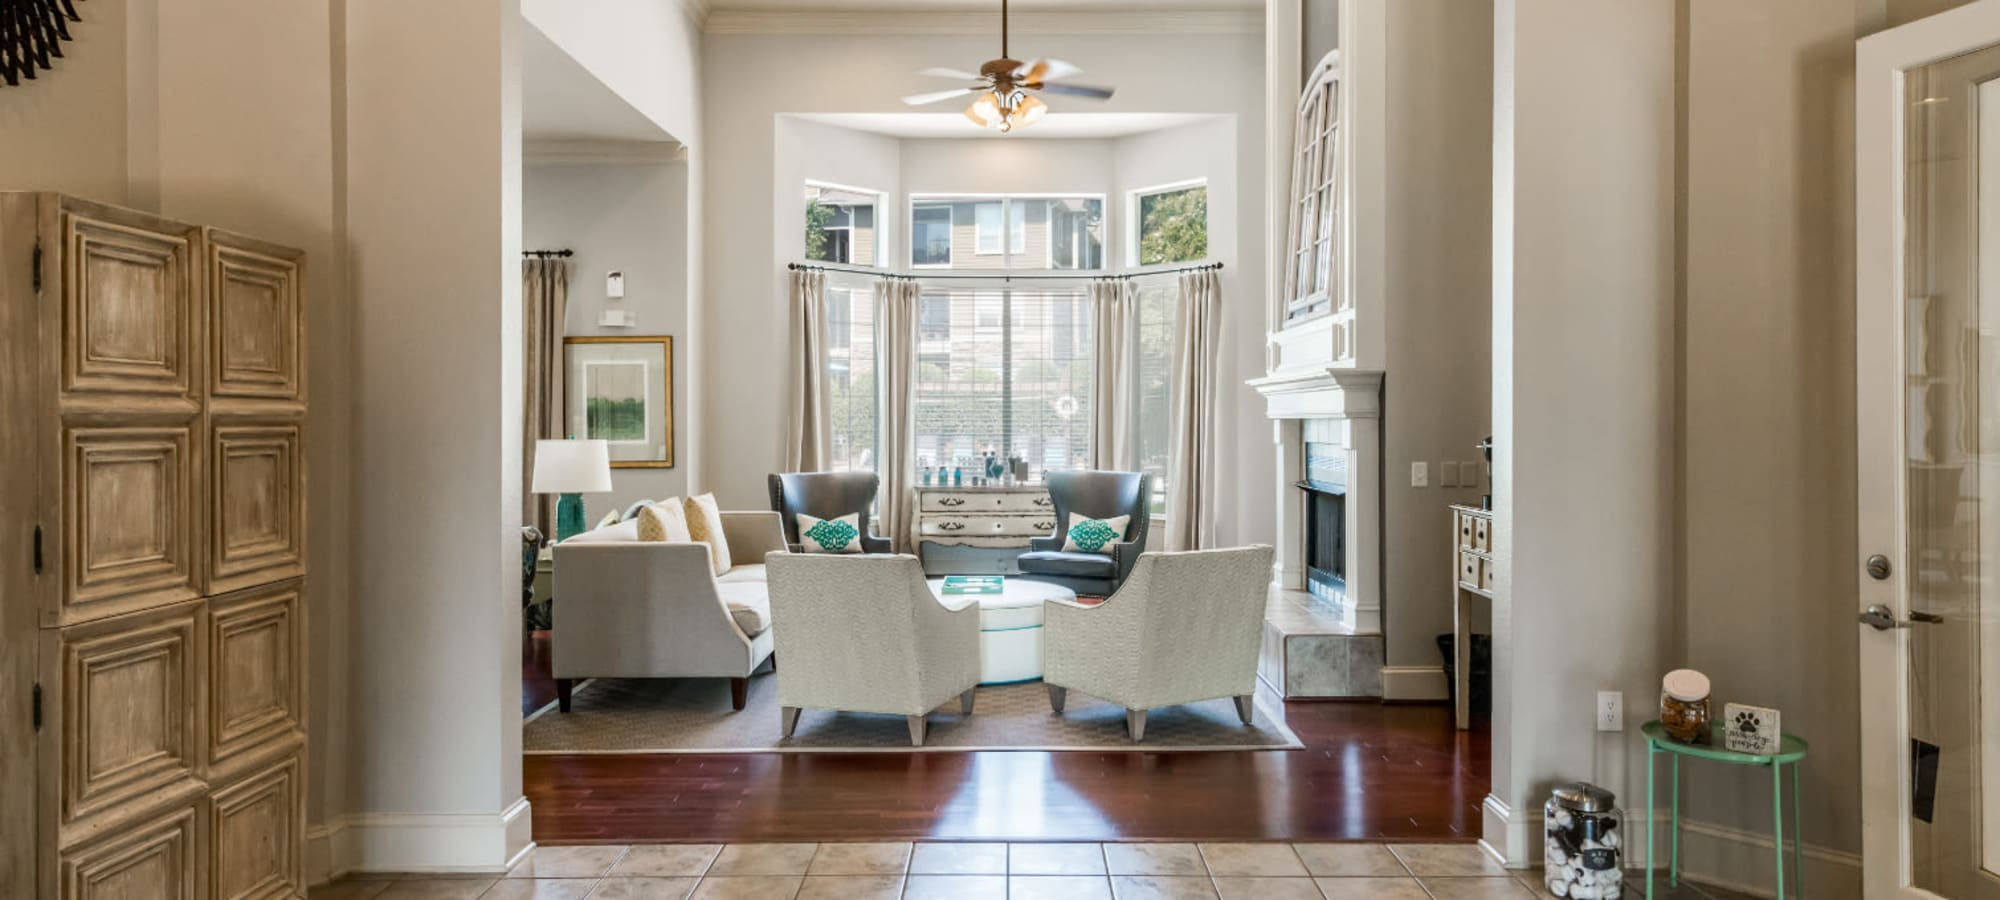 Apply to live at Marquis at Carmel Commons in Charlotte, North Carolina